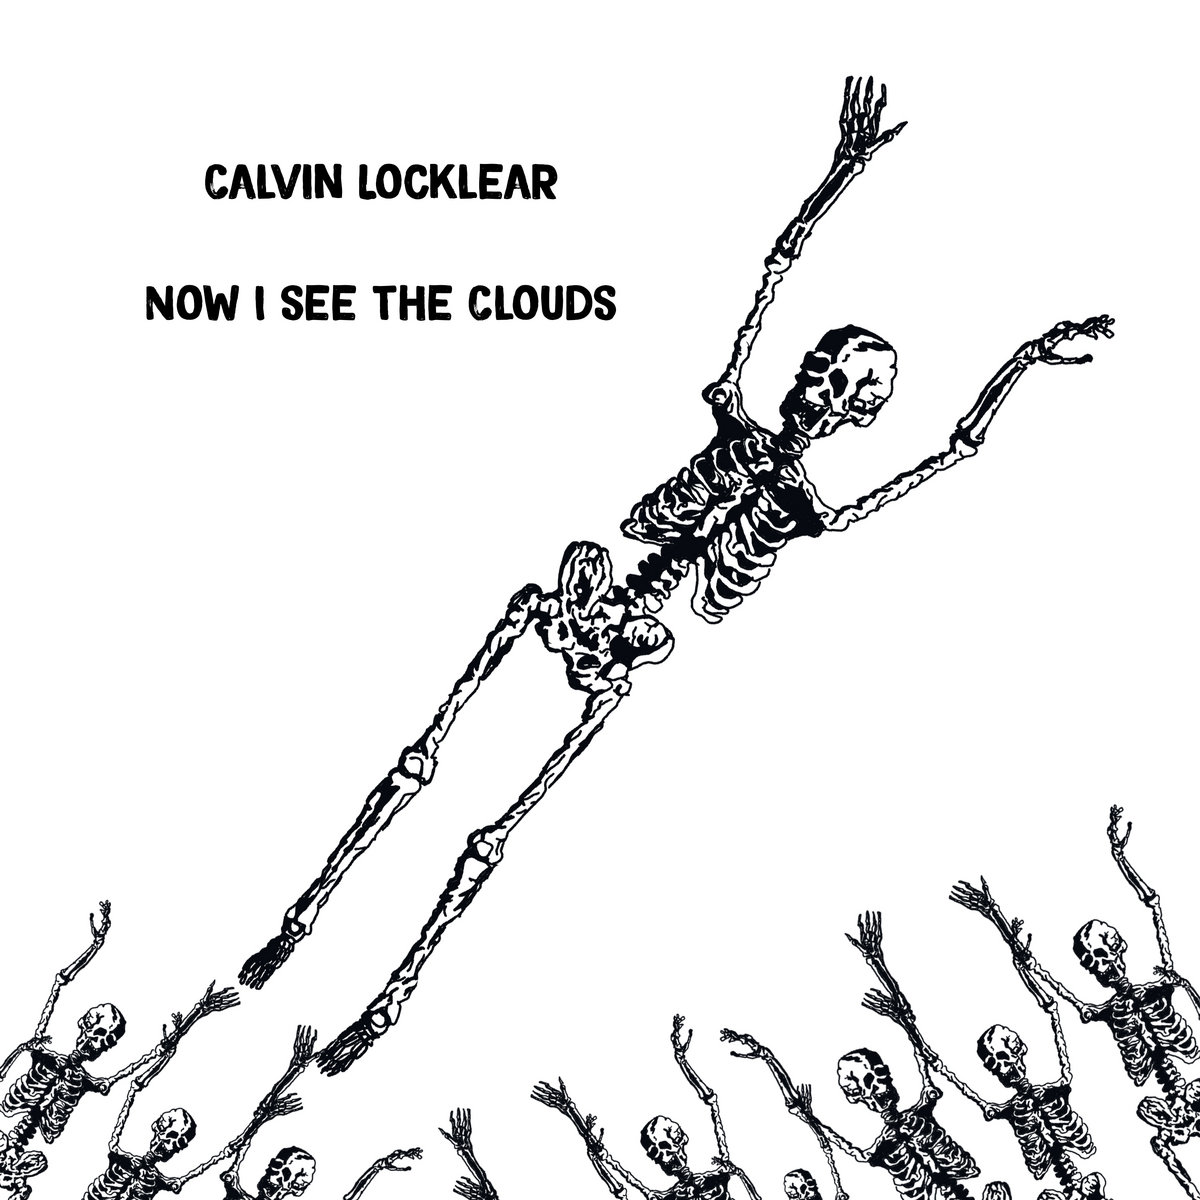 Now I See The Clouds by Calvin Locklear